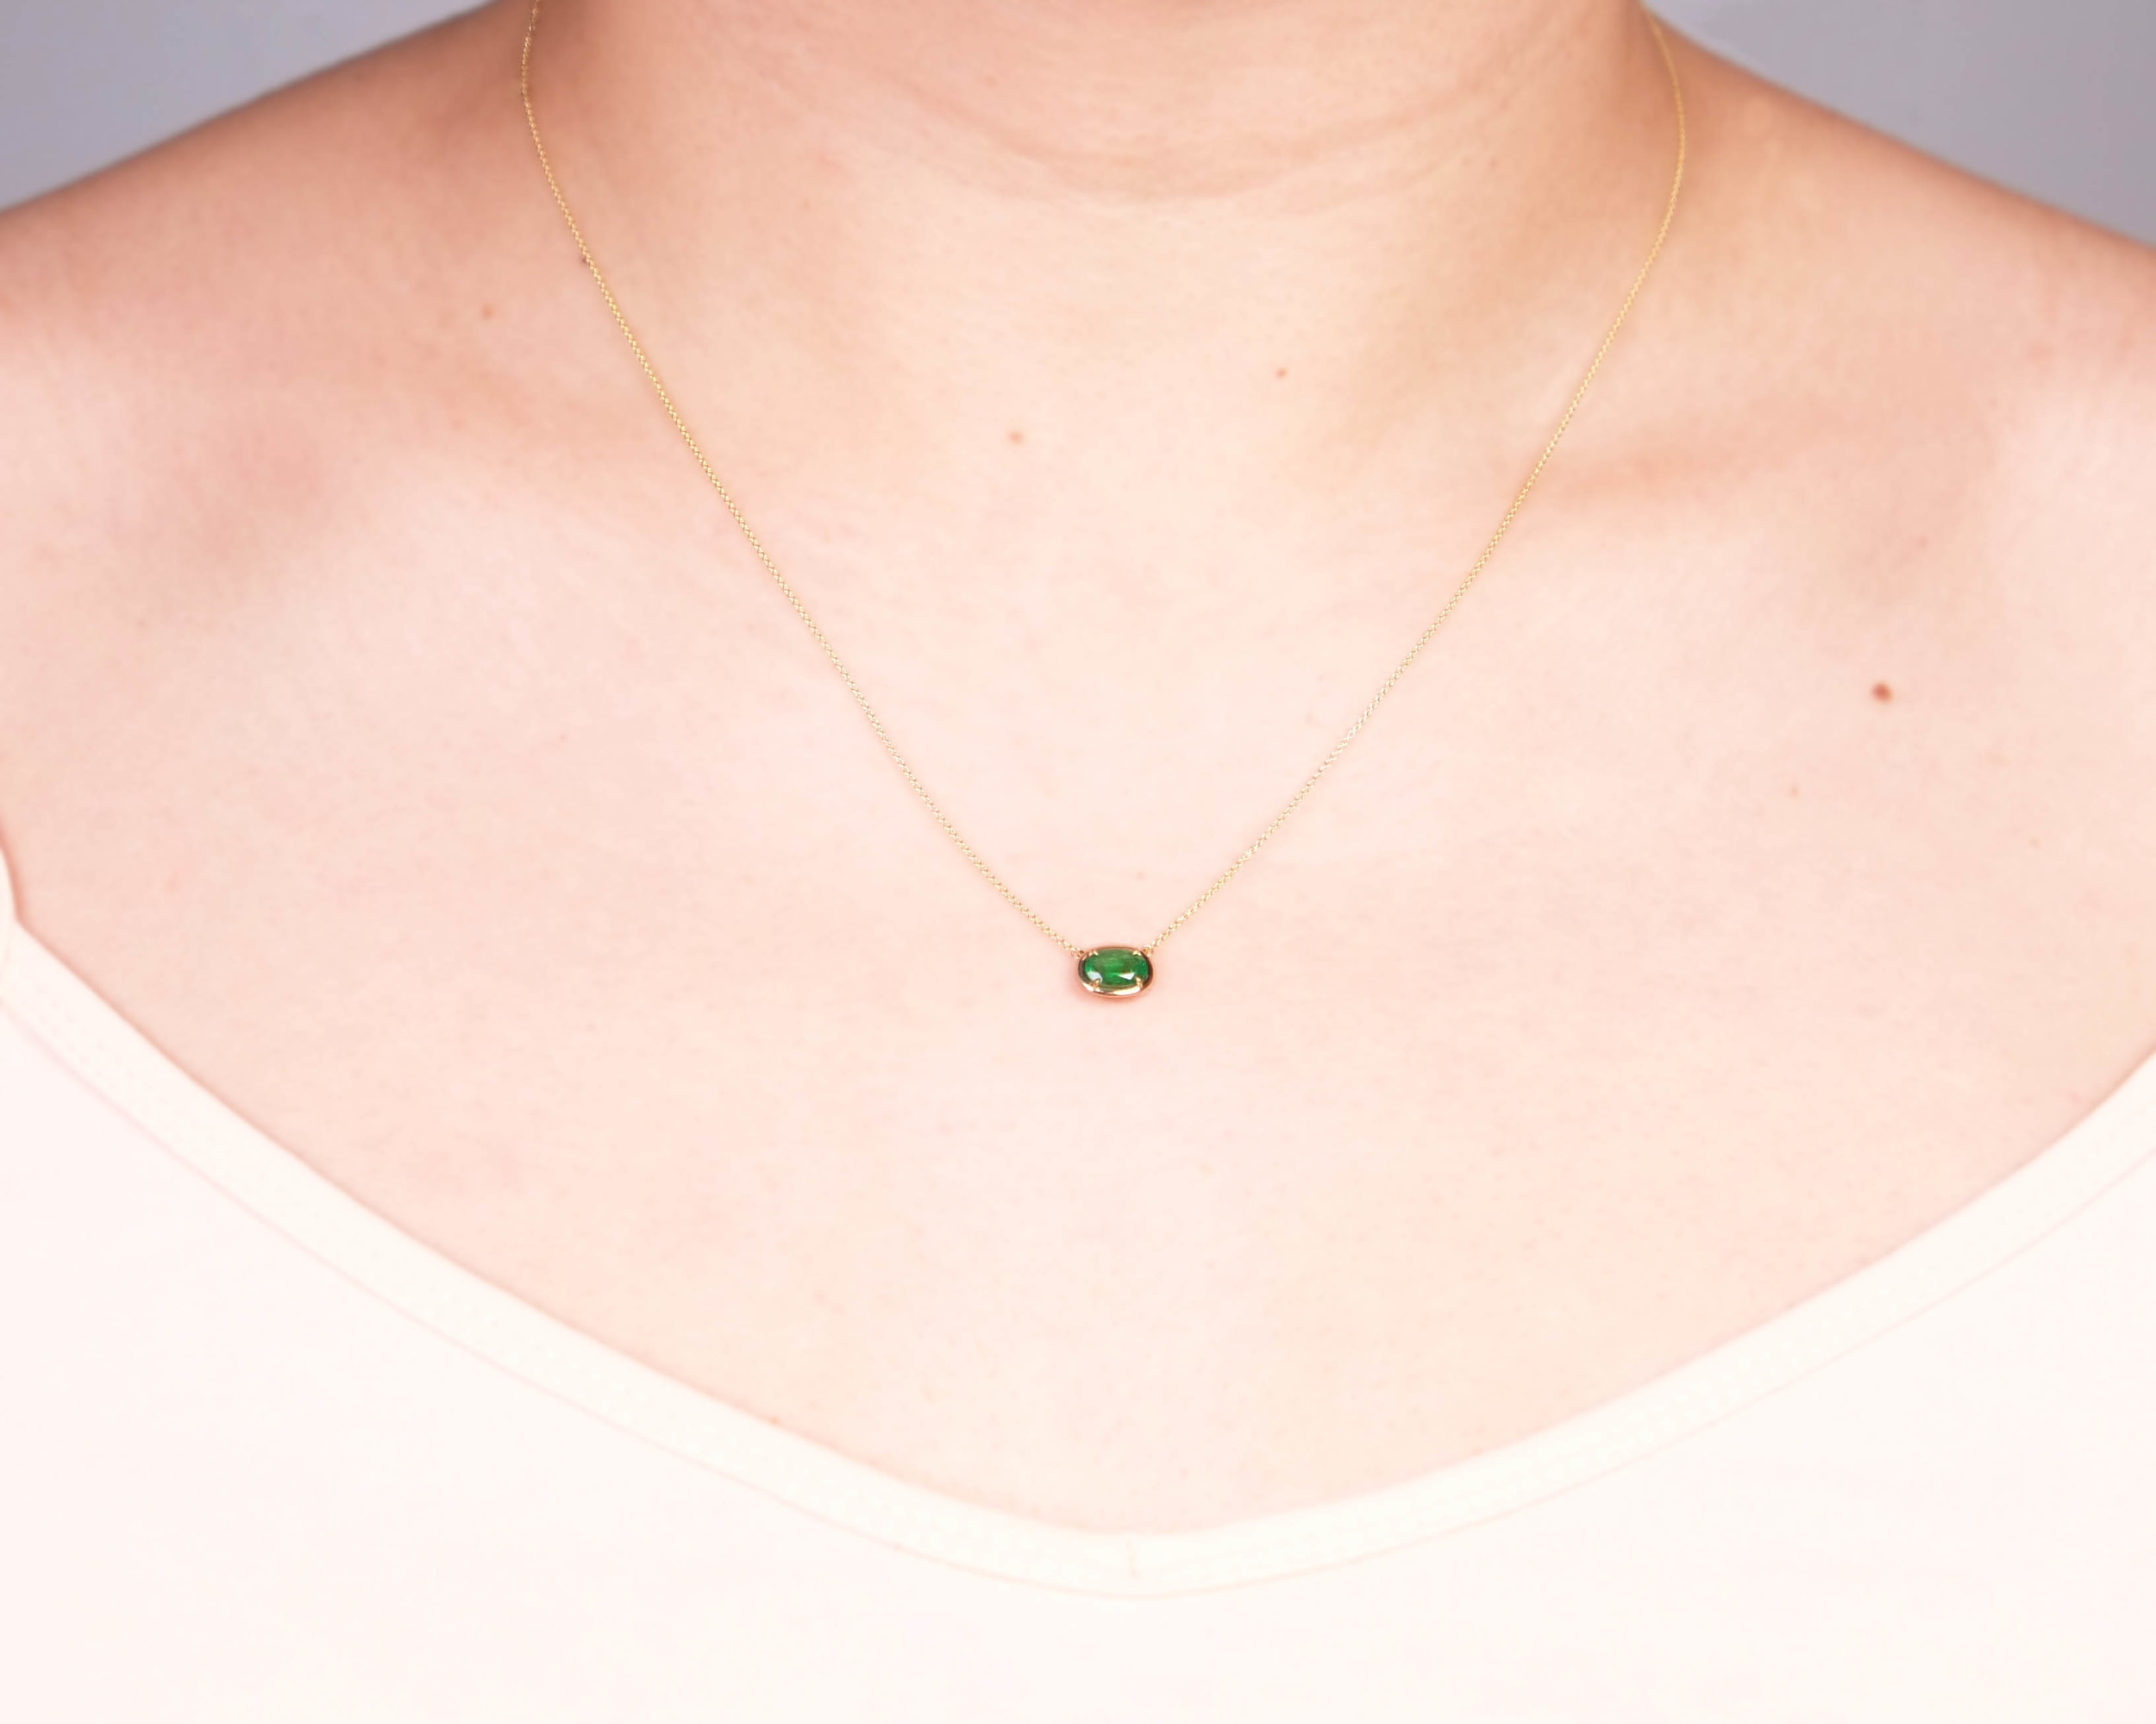 Emerald pendant neck.jpg